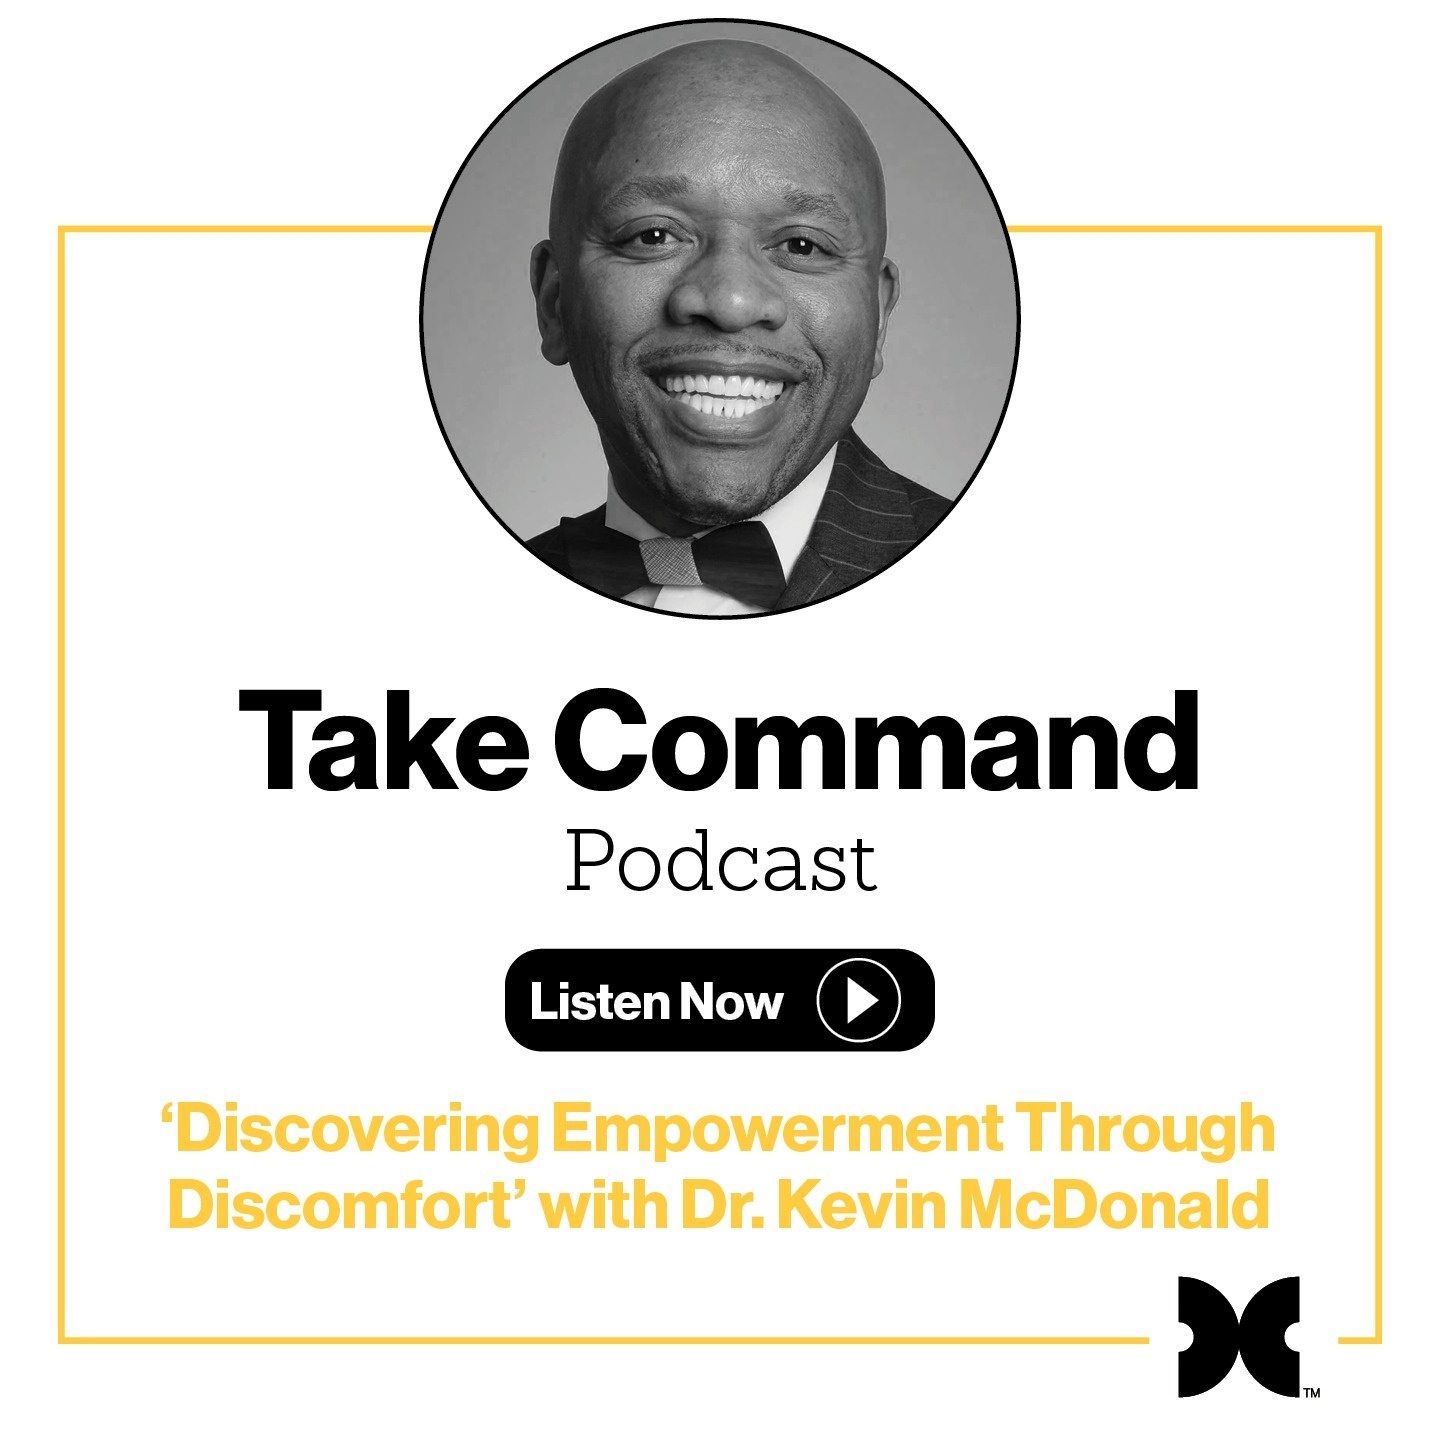 #8 'Discovering Empowerment Through Discomfort' with Dr. Kevin McDonald